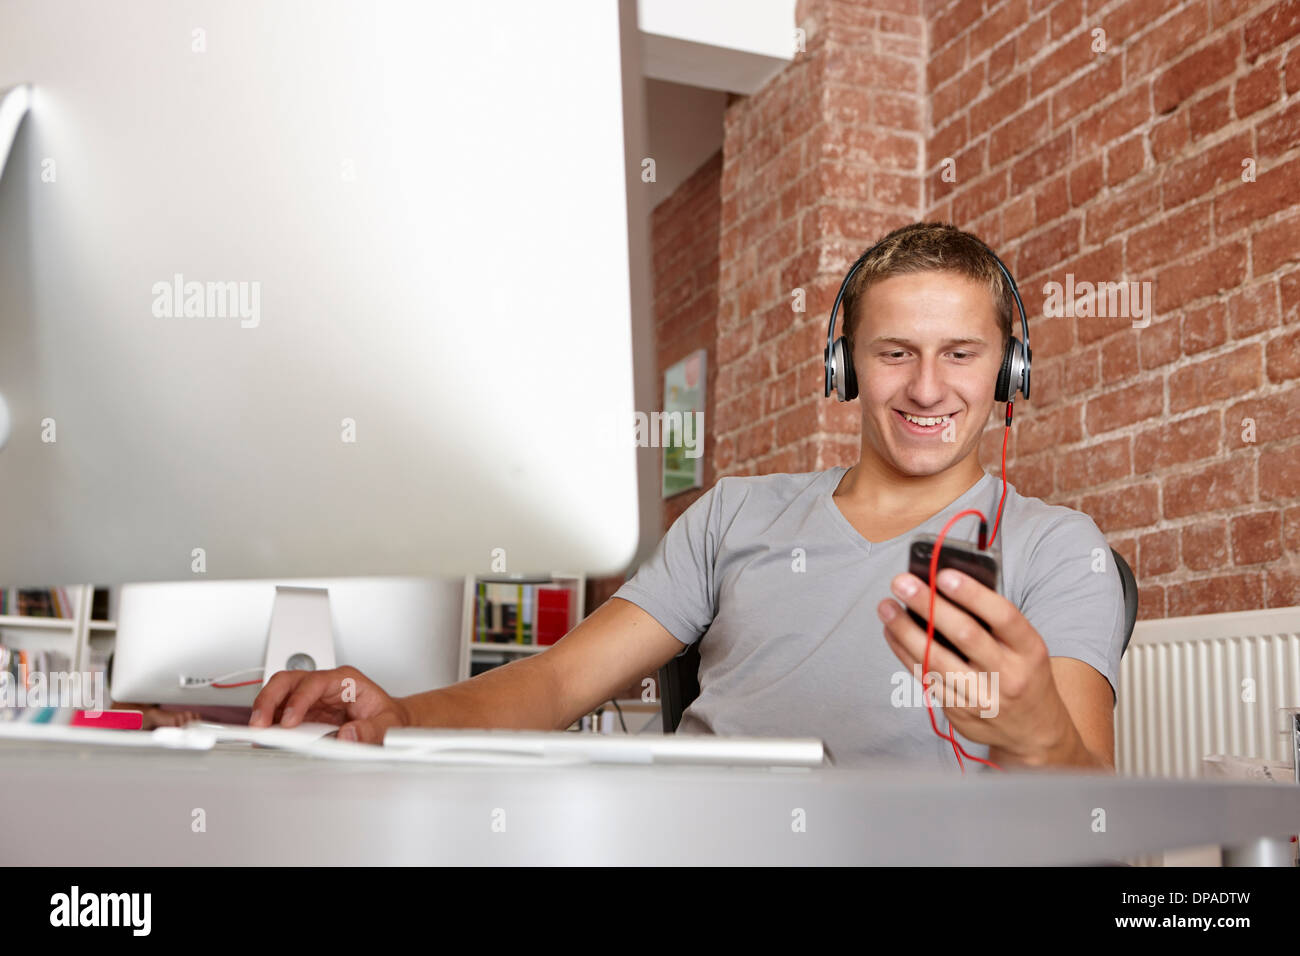 Young man at work using mp3 player - Stock Image